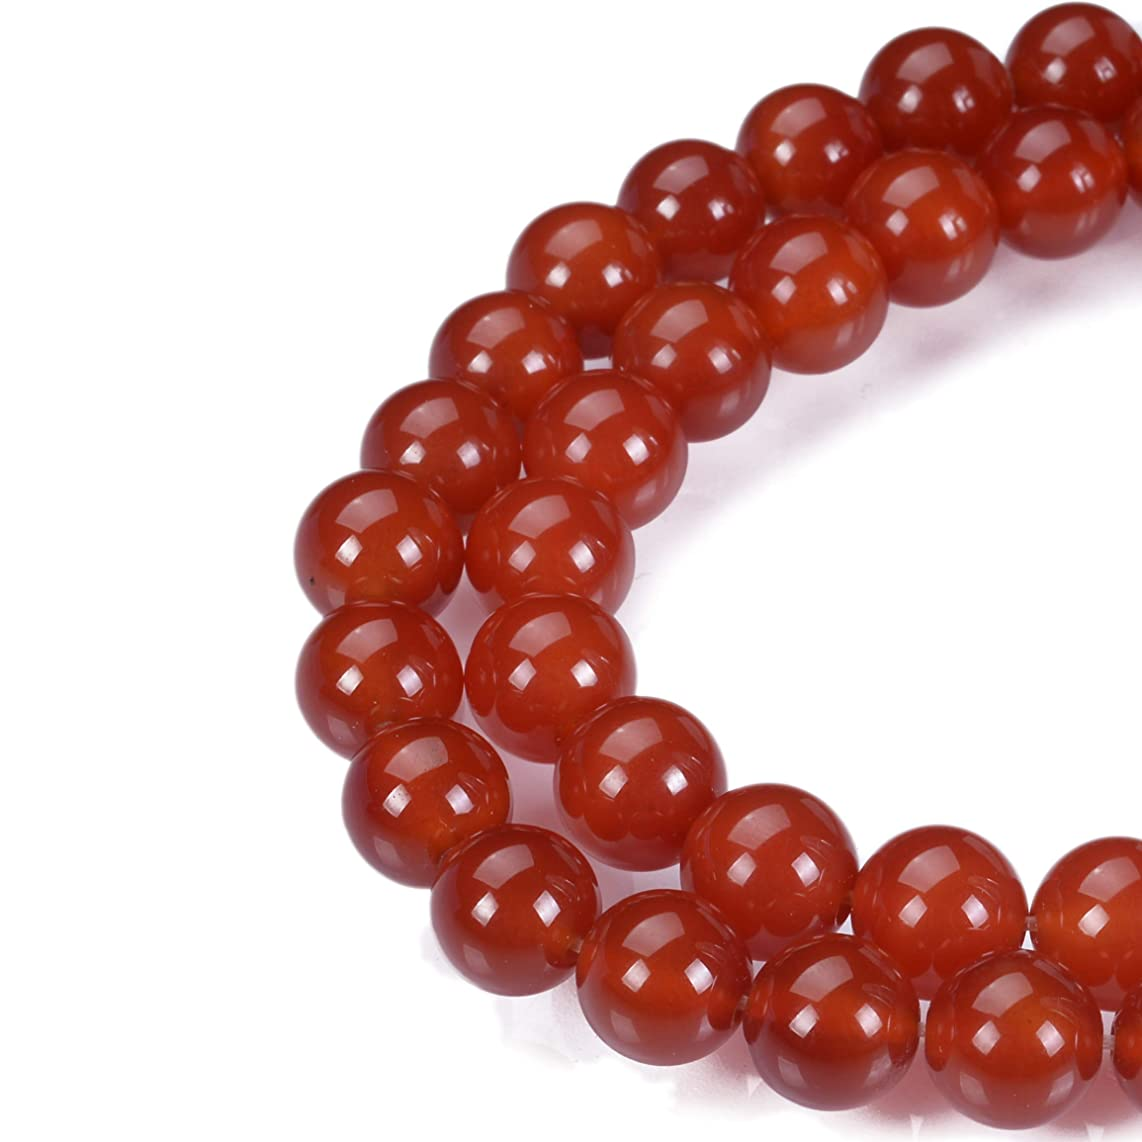 MOKYYus Natural Onyx Gemstone Loose Beads, 8 mm Red Agate Round Beads, Smooth Surface, Healing Power Crystal Energy Stone for Jewelry Making Accessories